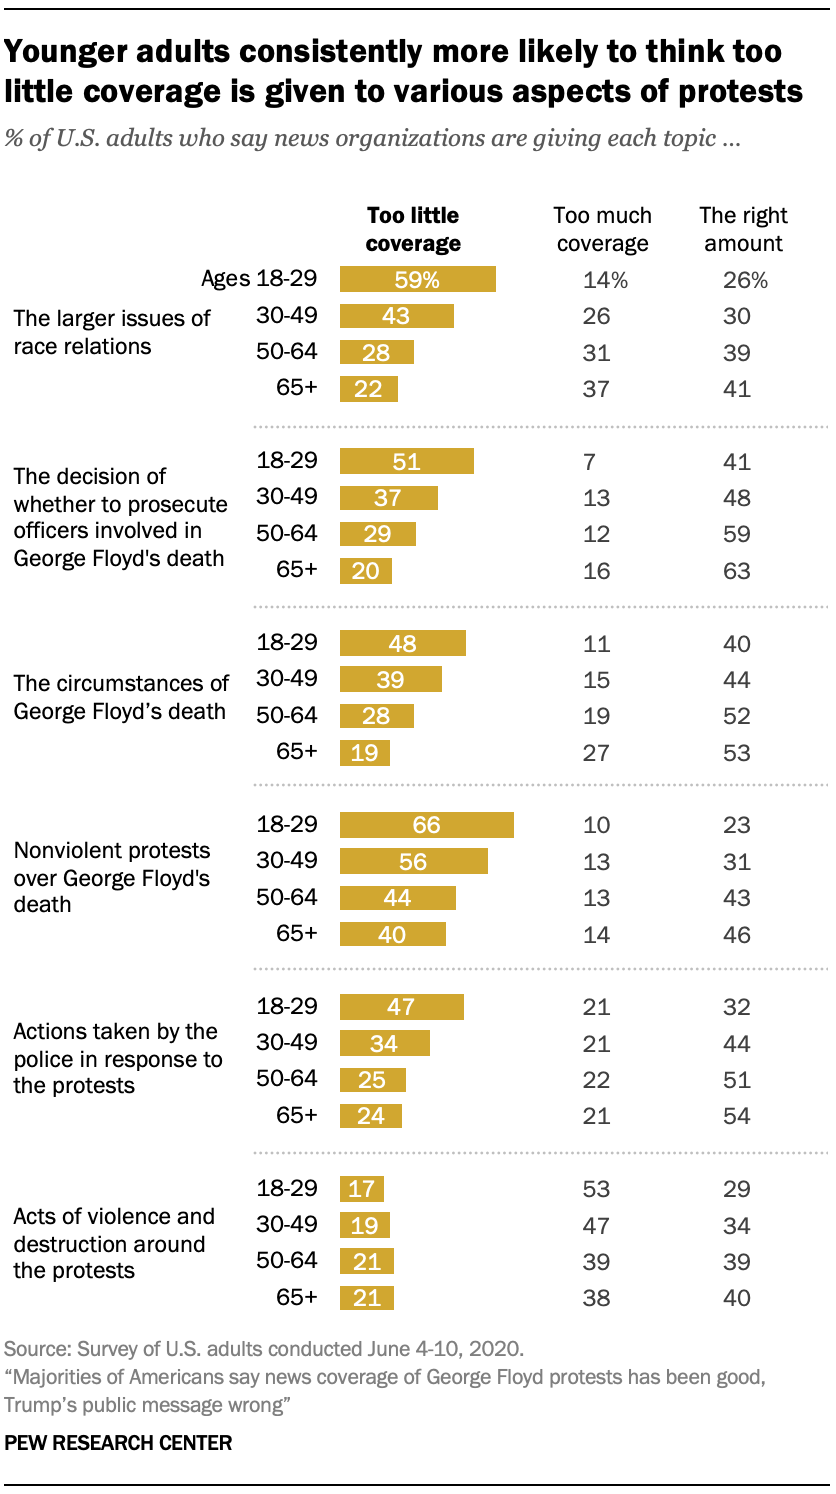 Younger adults consistently more likely to think too little coverage is given to various aspects of protests